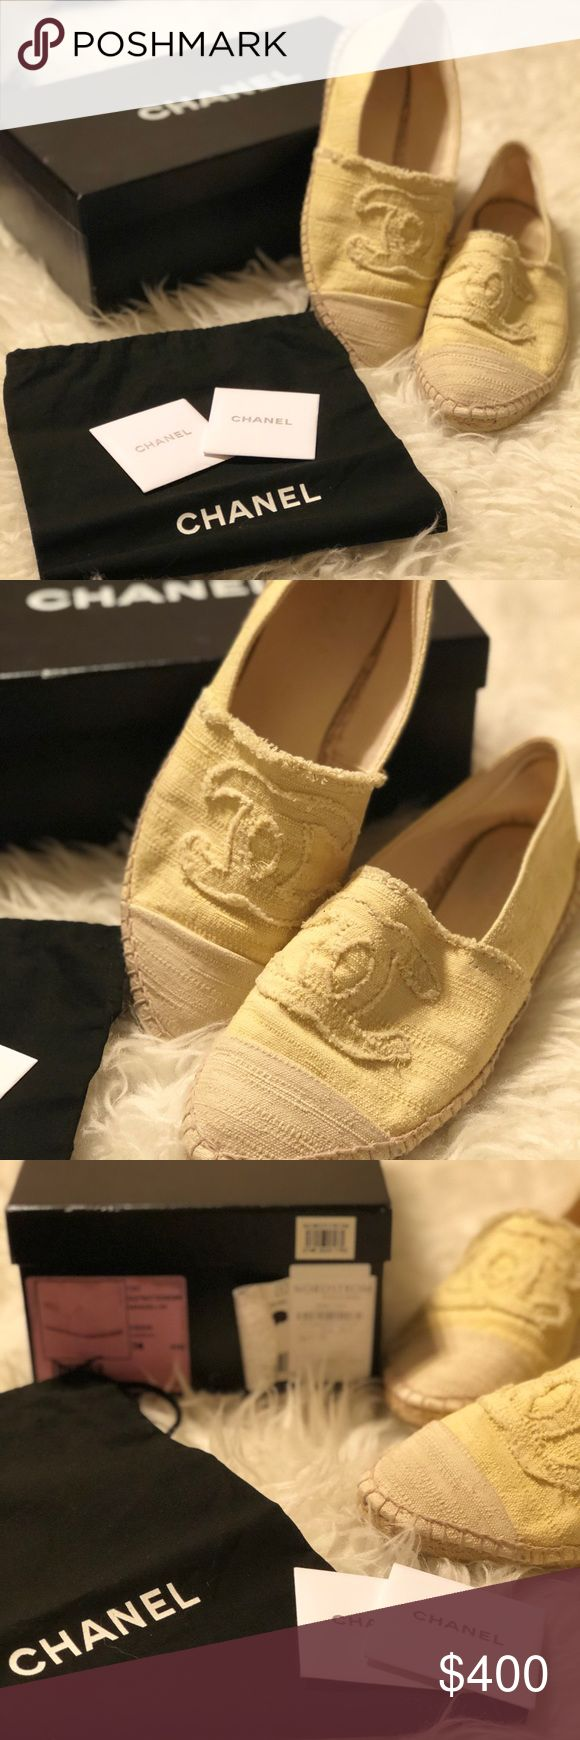 Chanel Espadrilles Pre-Loved Chanel Espadrilles Yellow and white In great condition Original tags, box, and dust bag  Paid $450 Will accept reasonable offers Size 38 but fits like a 37 Purchased from Nordstrom 2013 CHANEL Shoes Espadrilles